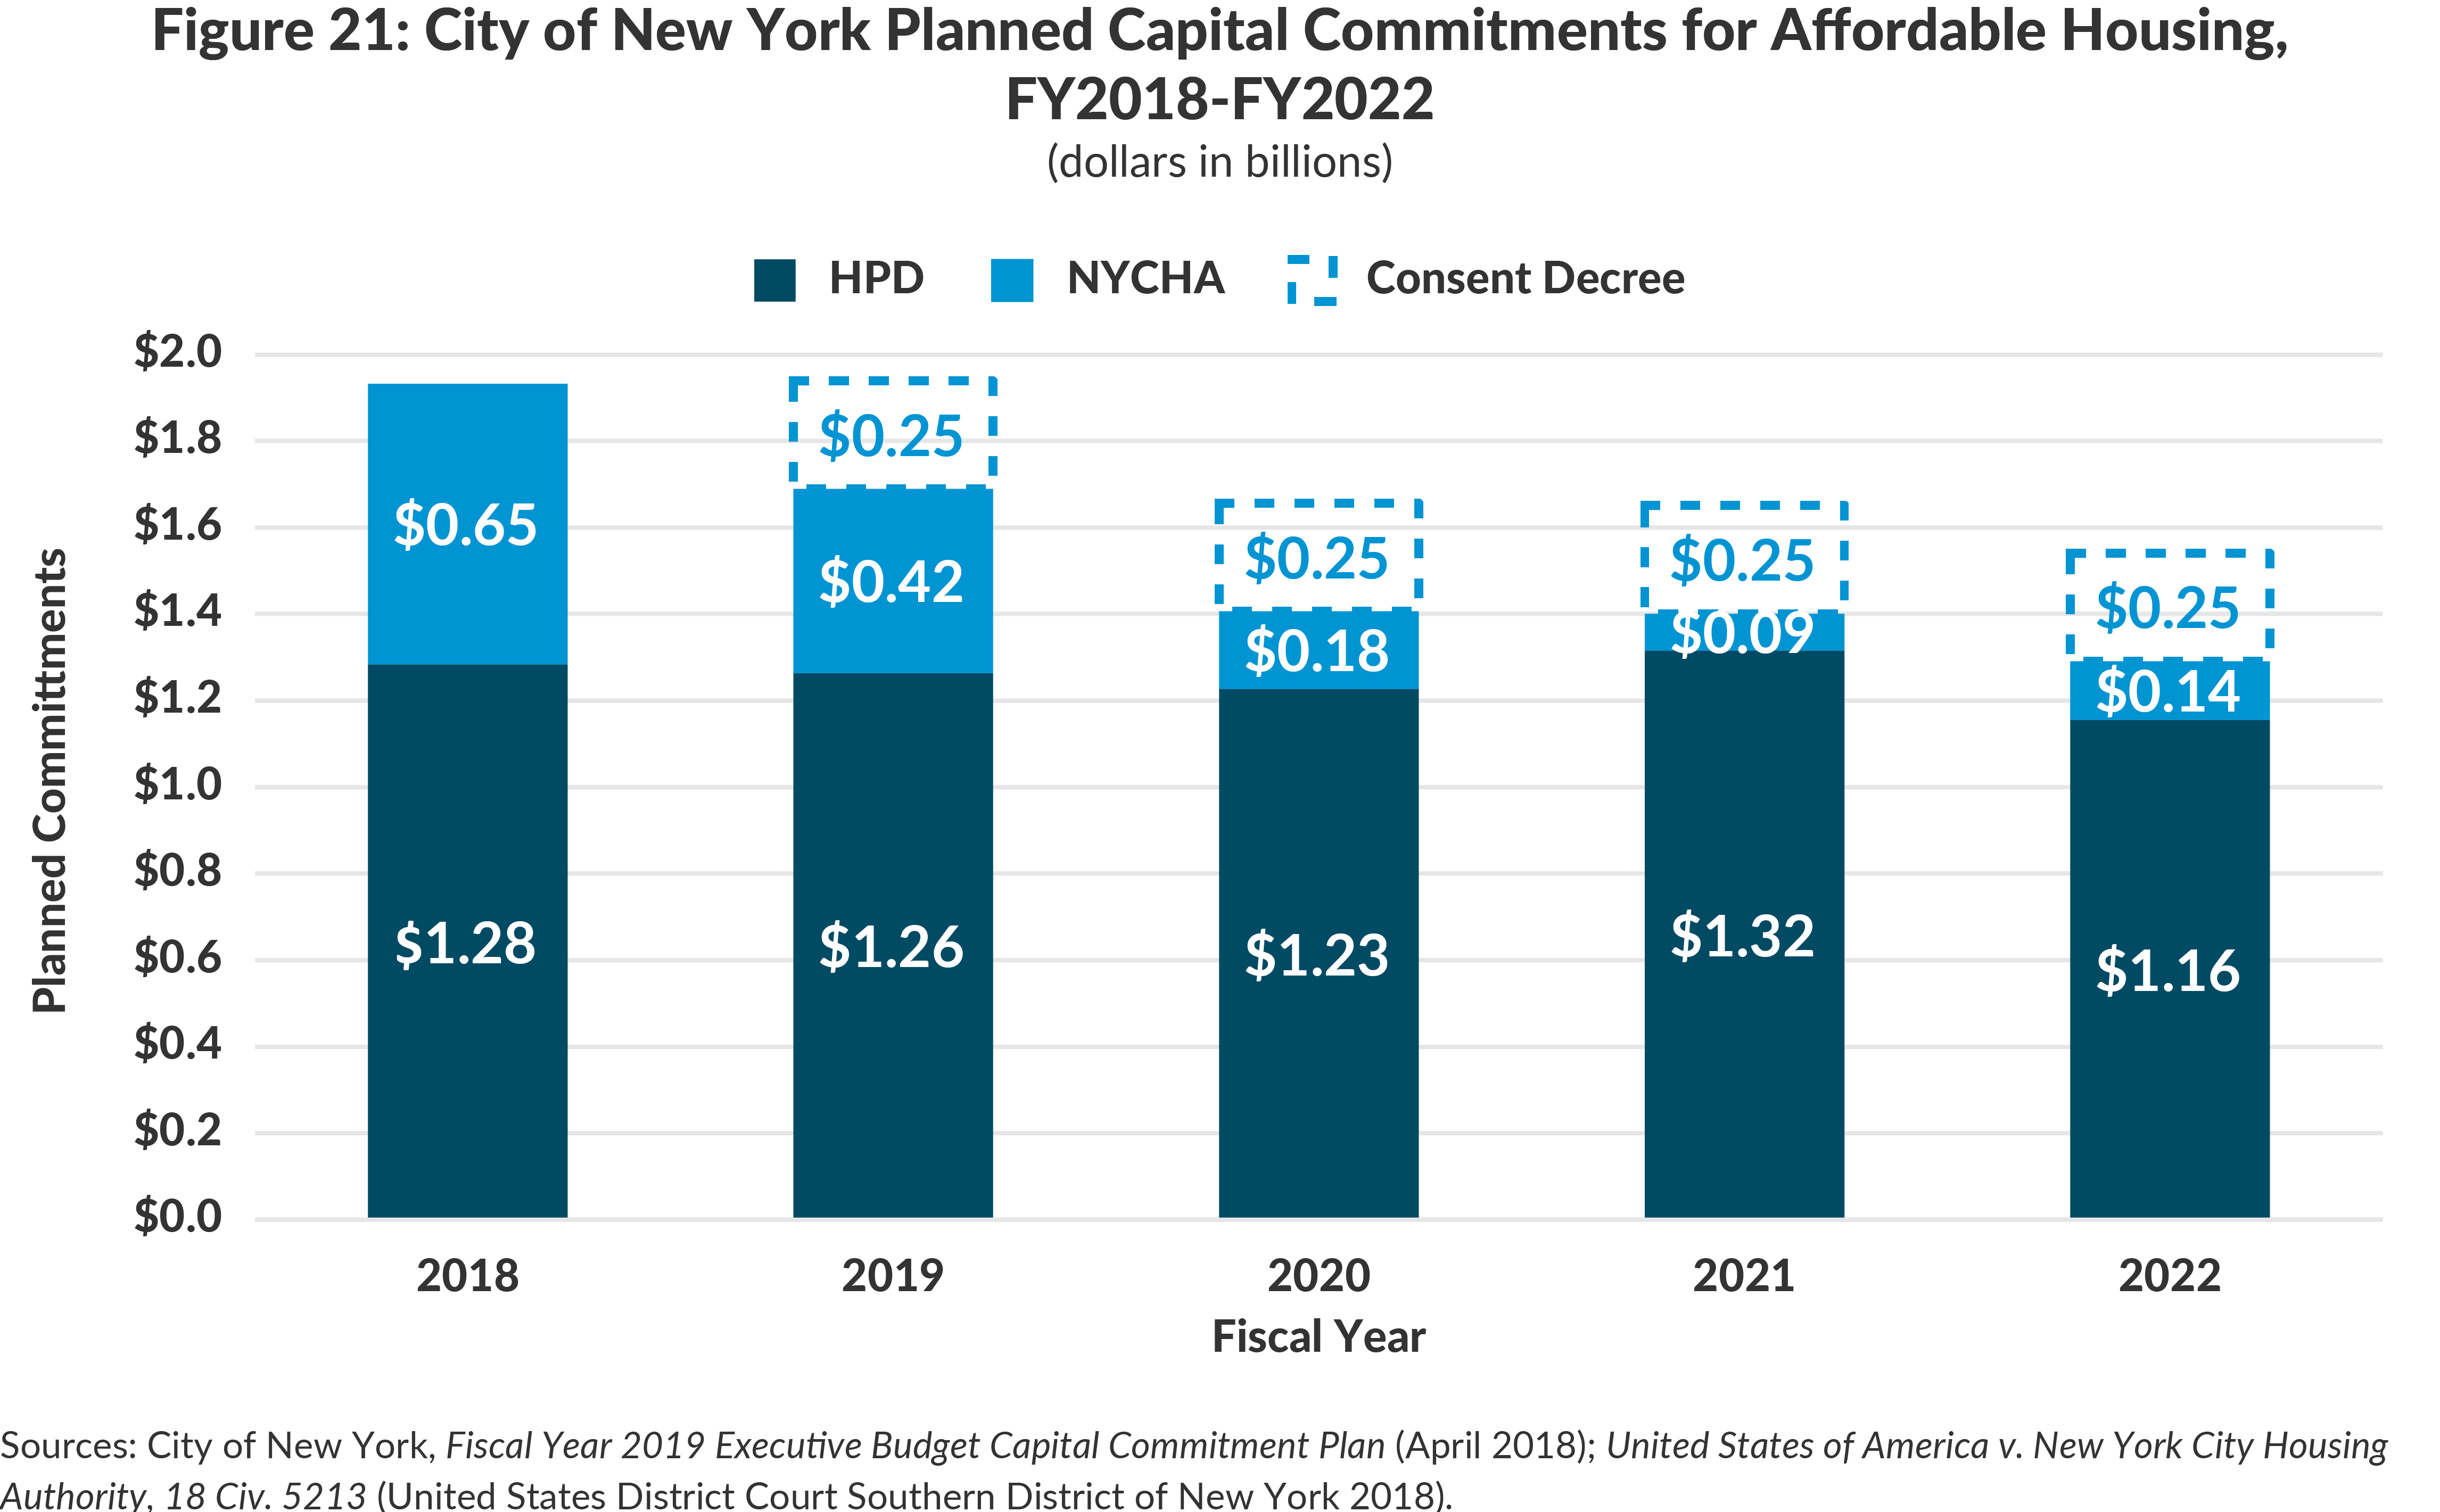 Figure 21: City of New York Planned Capital Commitments for Affordable Housing,FY2018-FY2022